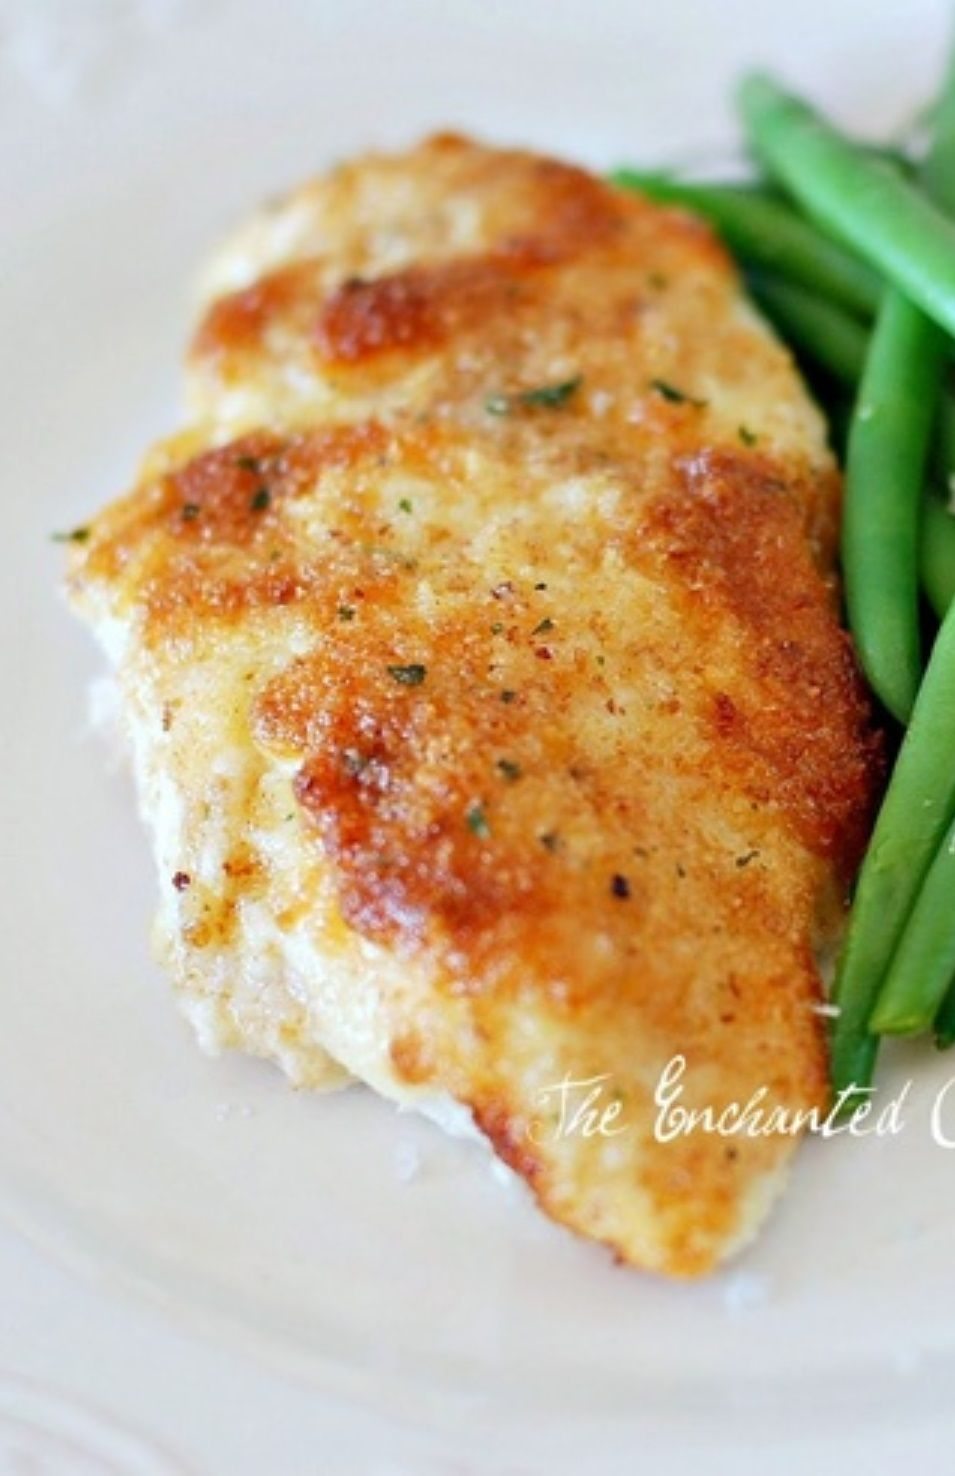 Parmesan Crusted Chicken Hellmann S Mayo Recipe Crusted Chicken Recipes Chicken Parmesan Recipes Chicken Recipes,Ikea Customer Service Email Sweden